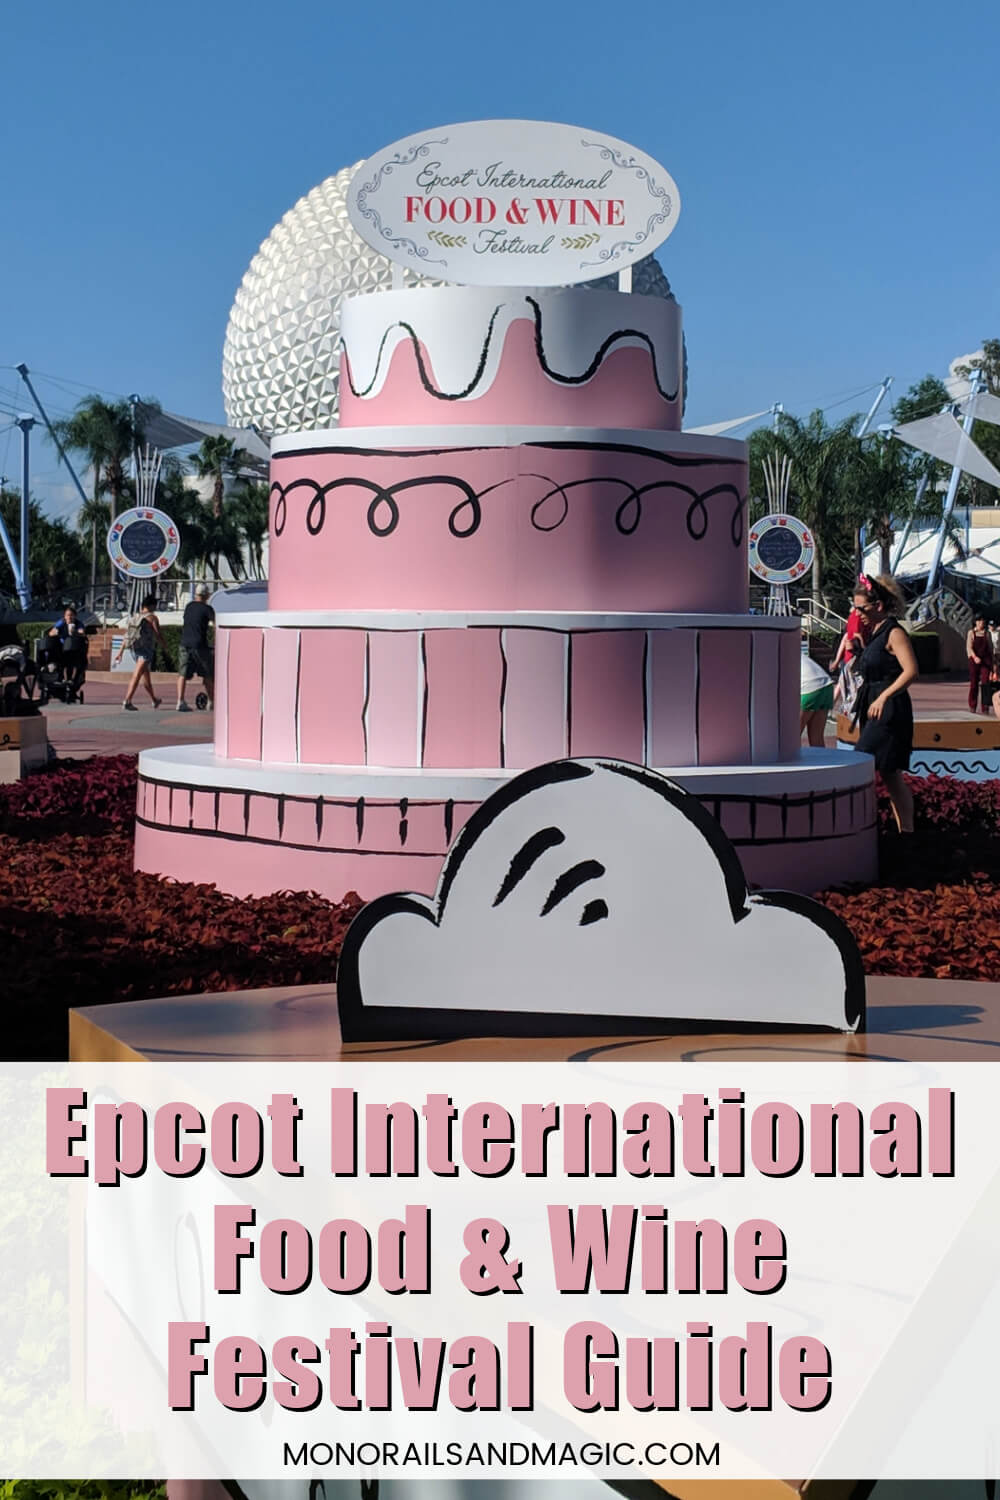 Epcot International Food and Wine Festival display.